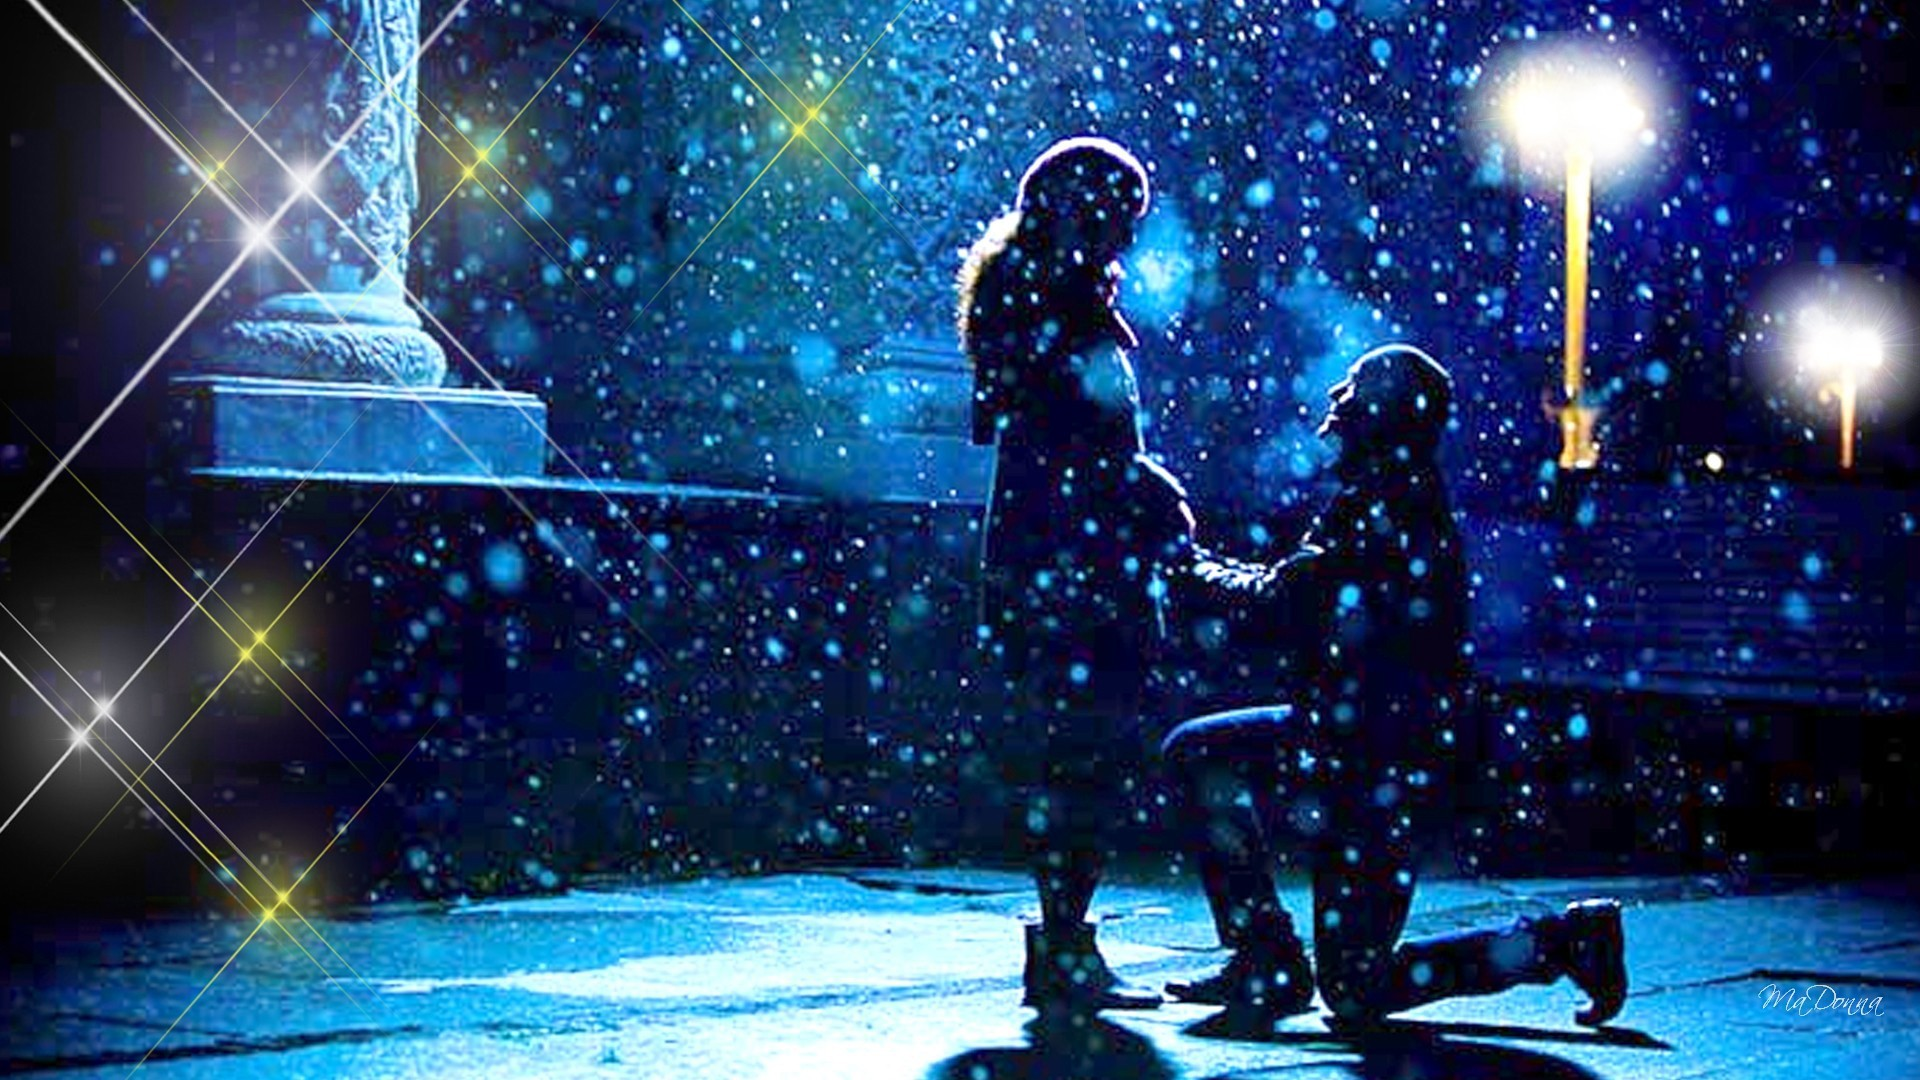 … Night Lamps Free Desktop Backgrounds. 1920×1080. Lamps Tag – Love Snow  Sparkles Cold Romantic Valentines Day Lovers Proposal Stars Winter Couple  Lights